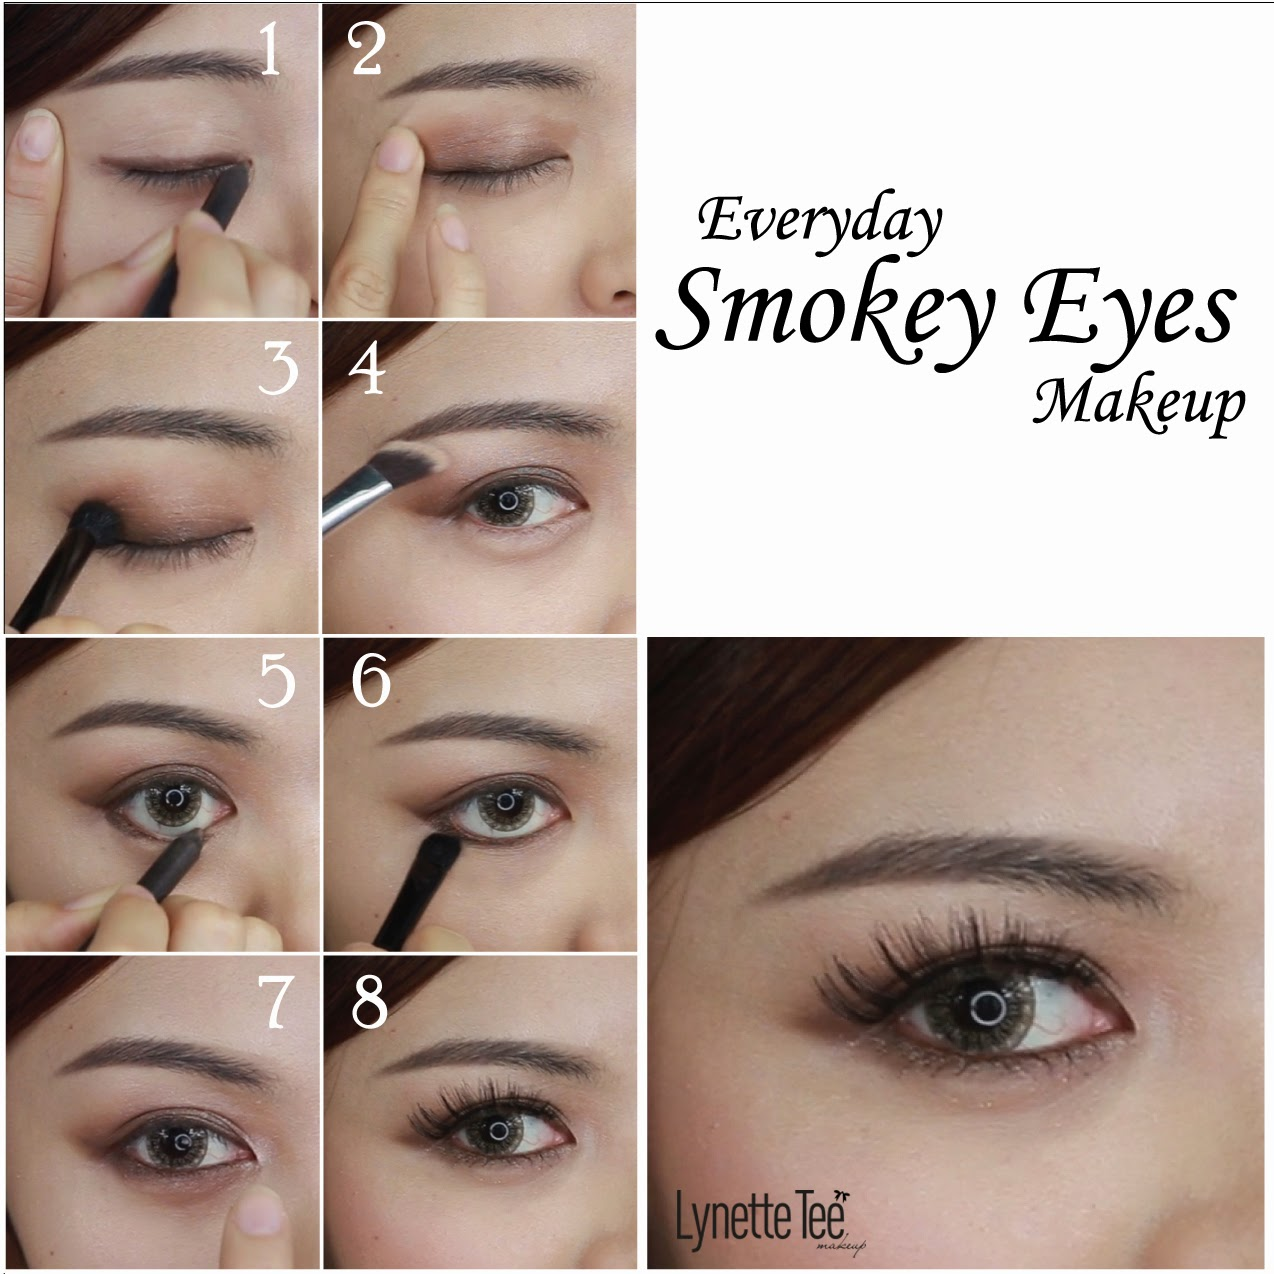 Everyday makeup tutorial for brown eyes gallery any tutorial examples everyday smokey eyes makeup lynette tee makeup beauty blog everyday smokey eyes makeup step by step baditri Image collections